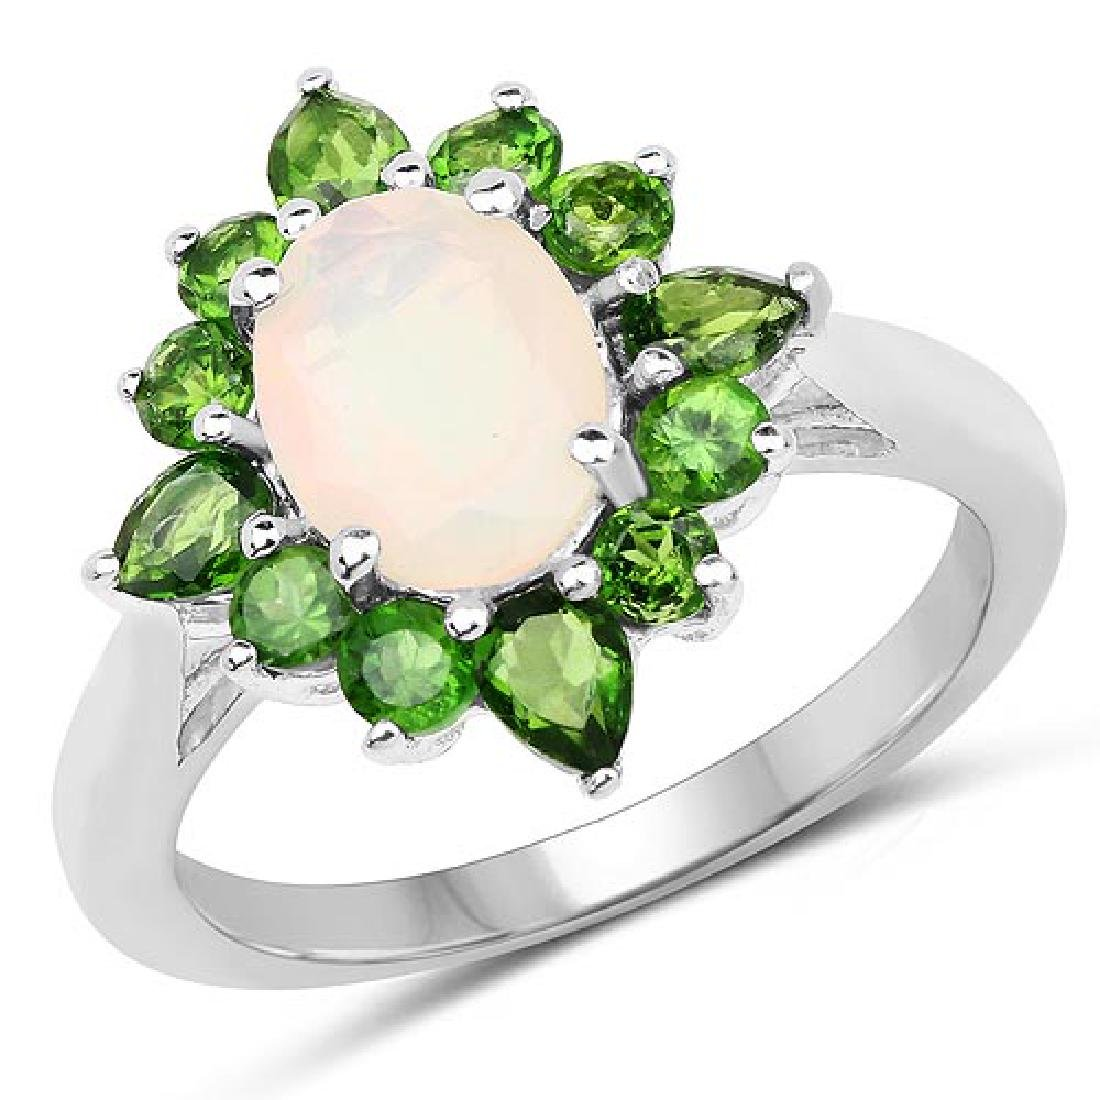 2.16 Carat Genuine Ethiopian Opal and Chrome Diopside .